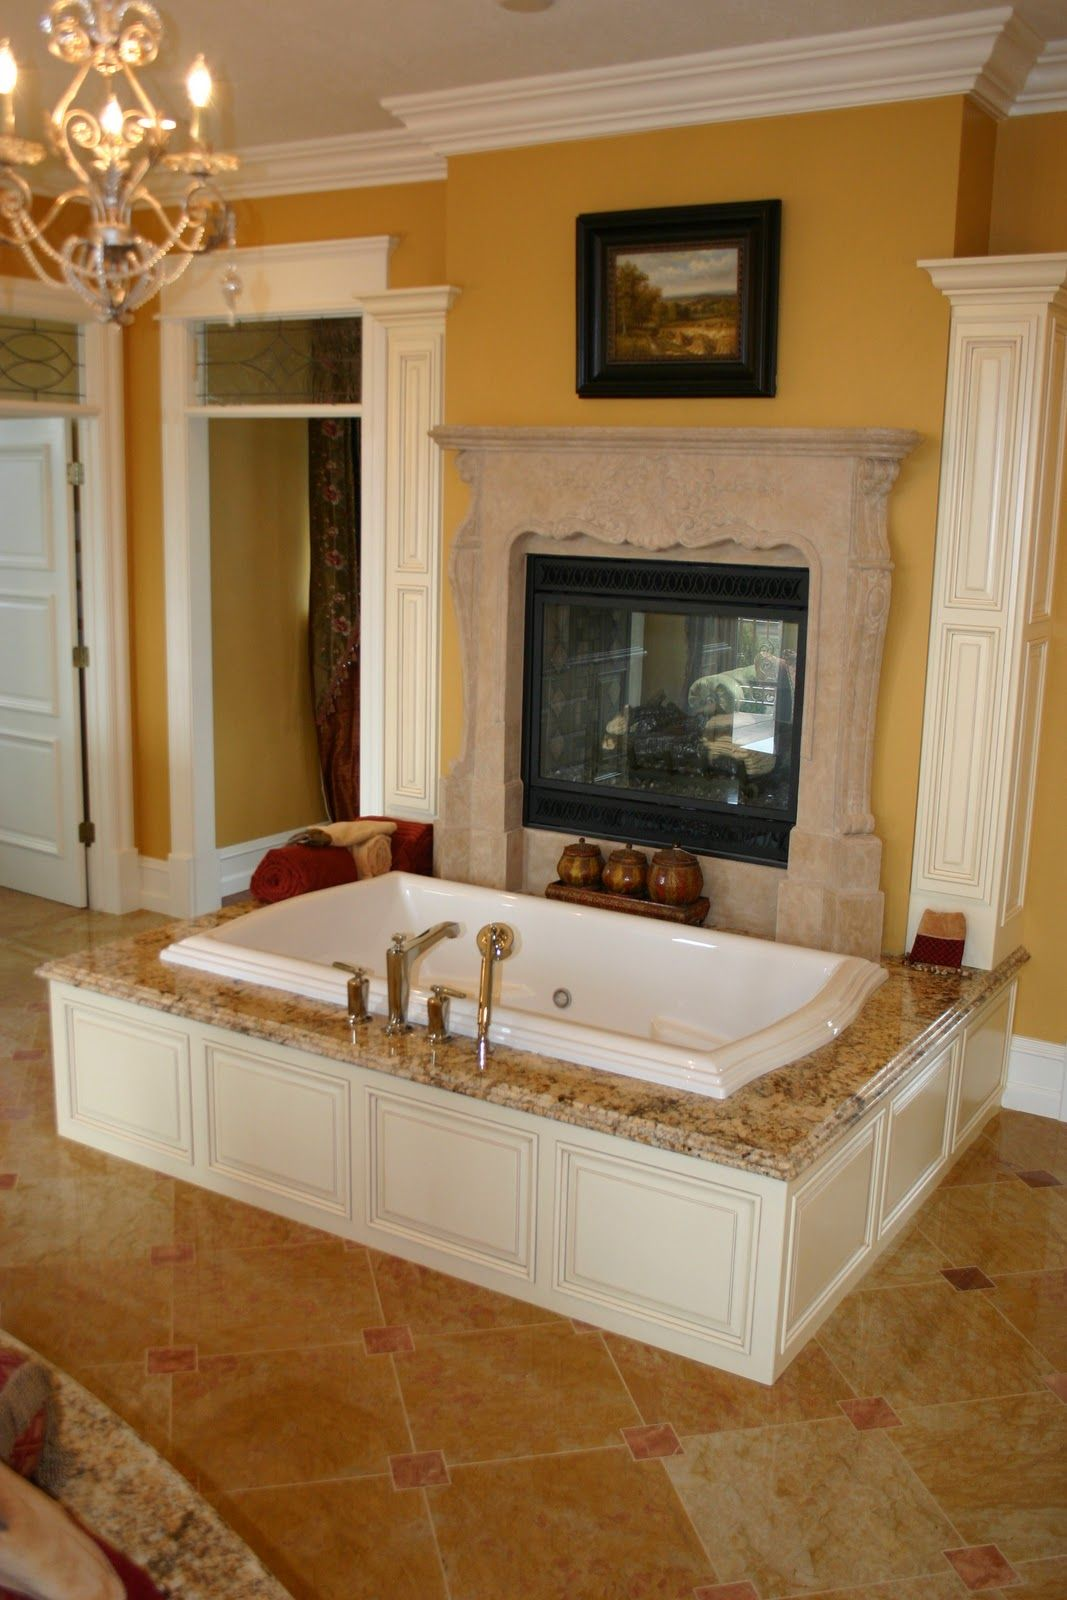 Bedroom Bathroom Beautiful Design And Decoration Of: A Delicious Tub In Front Of A Fireplace In A GRAND Master